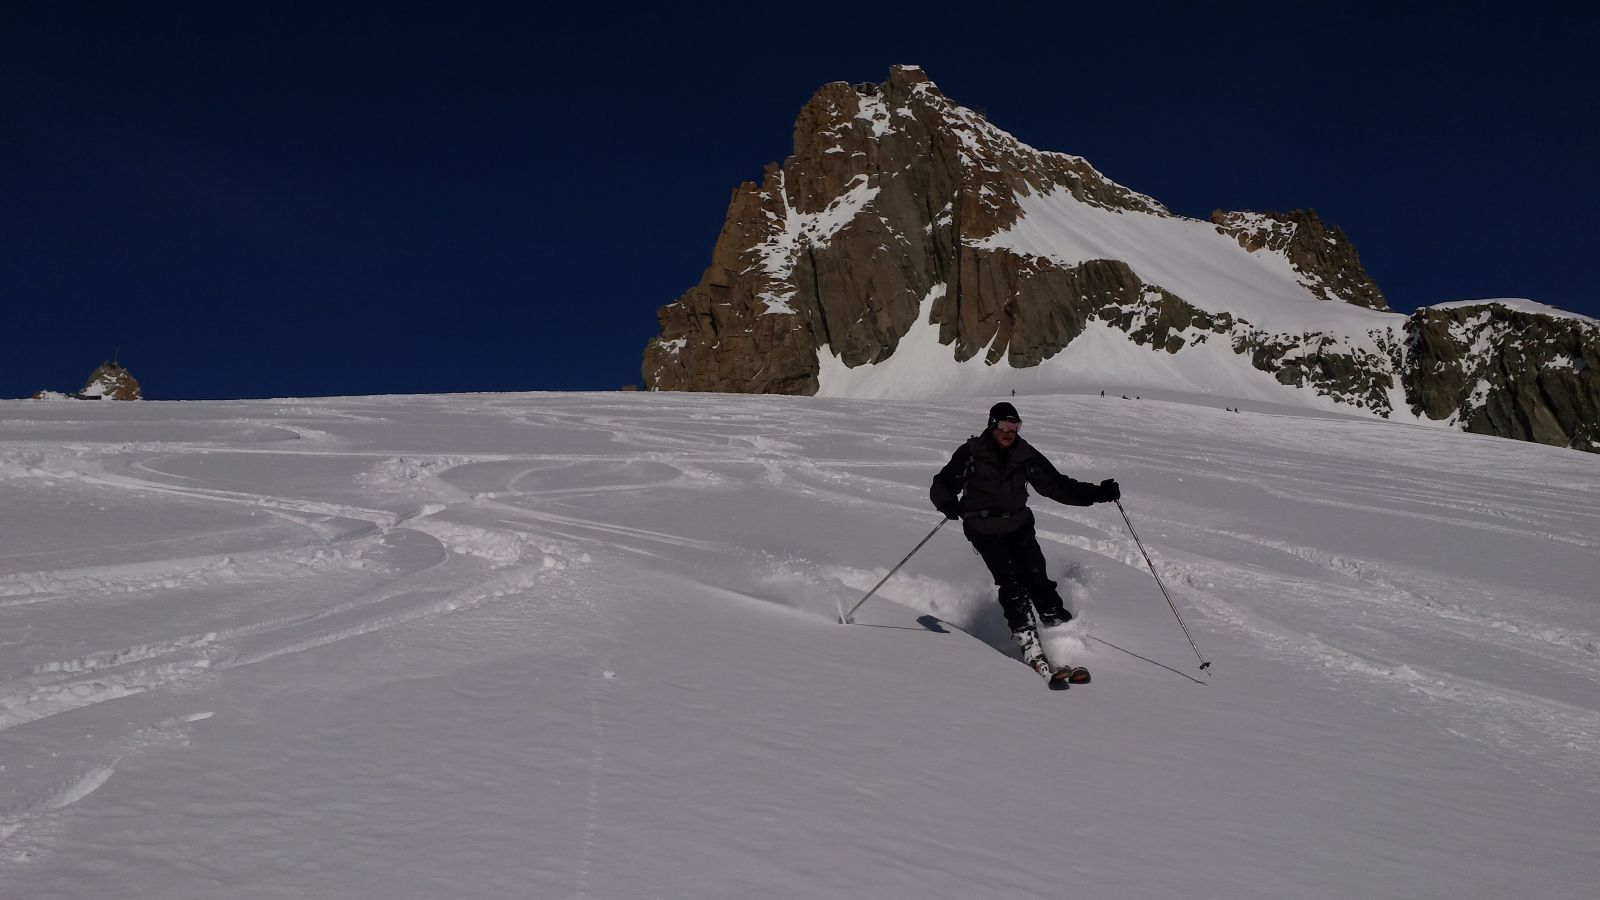 vallee blache guide chamonix ski